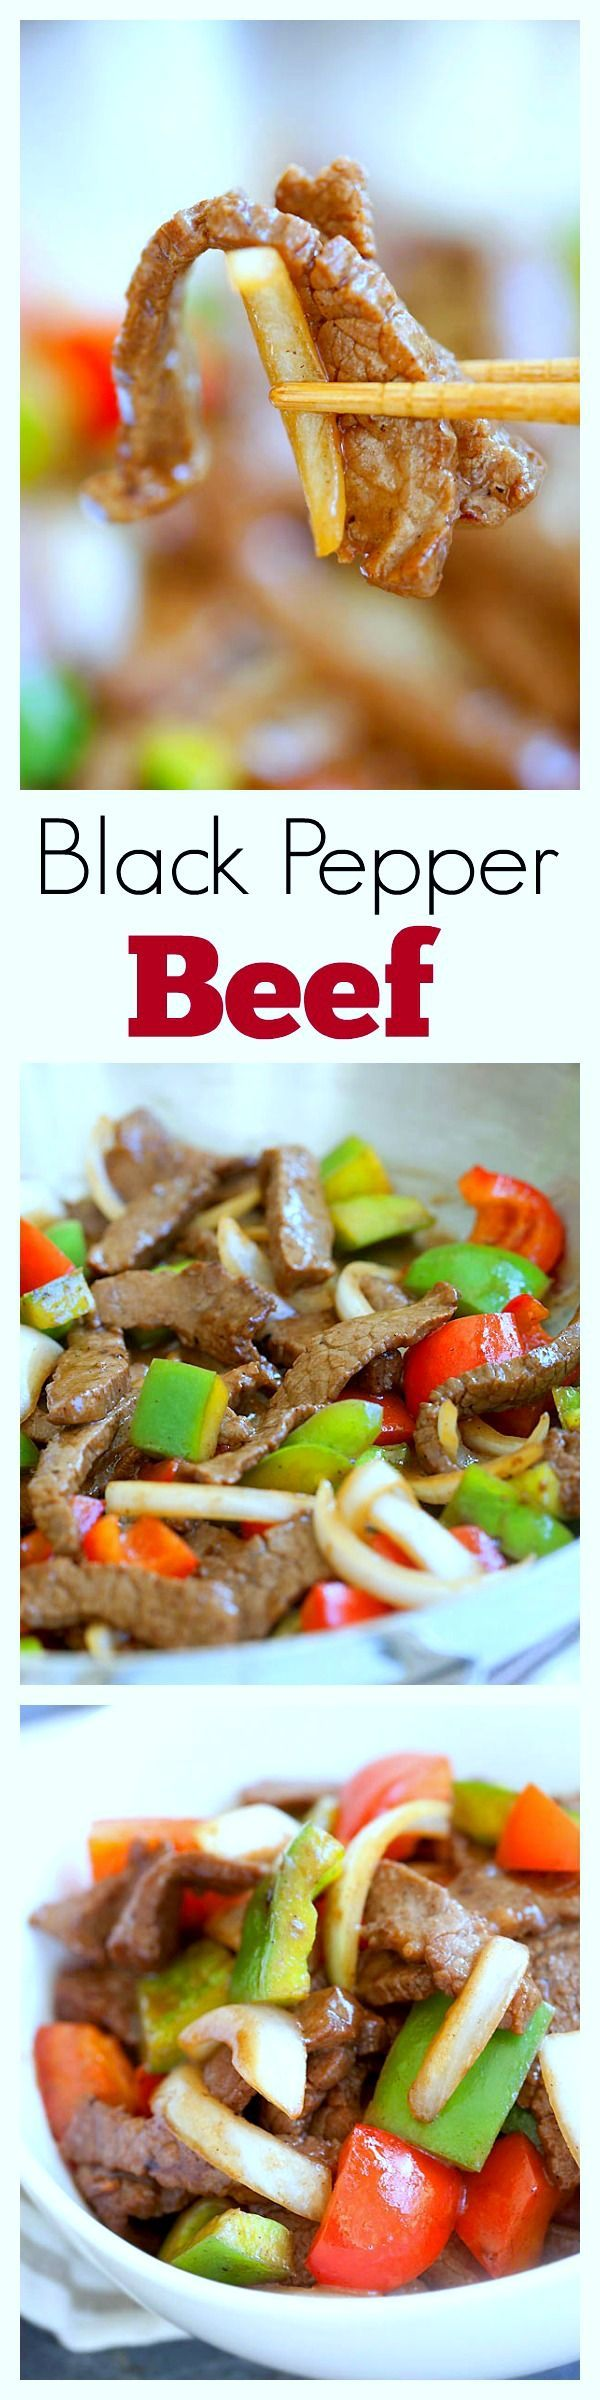 Easy black pepper beef recipe - delicious Chinese black pepper steak that takes 20 mins and much better than takeout | http://rasamalaysia.com